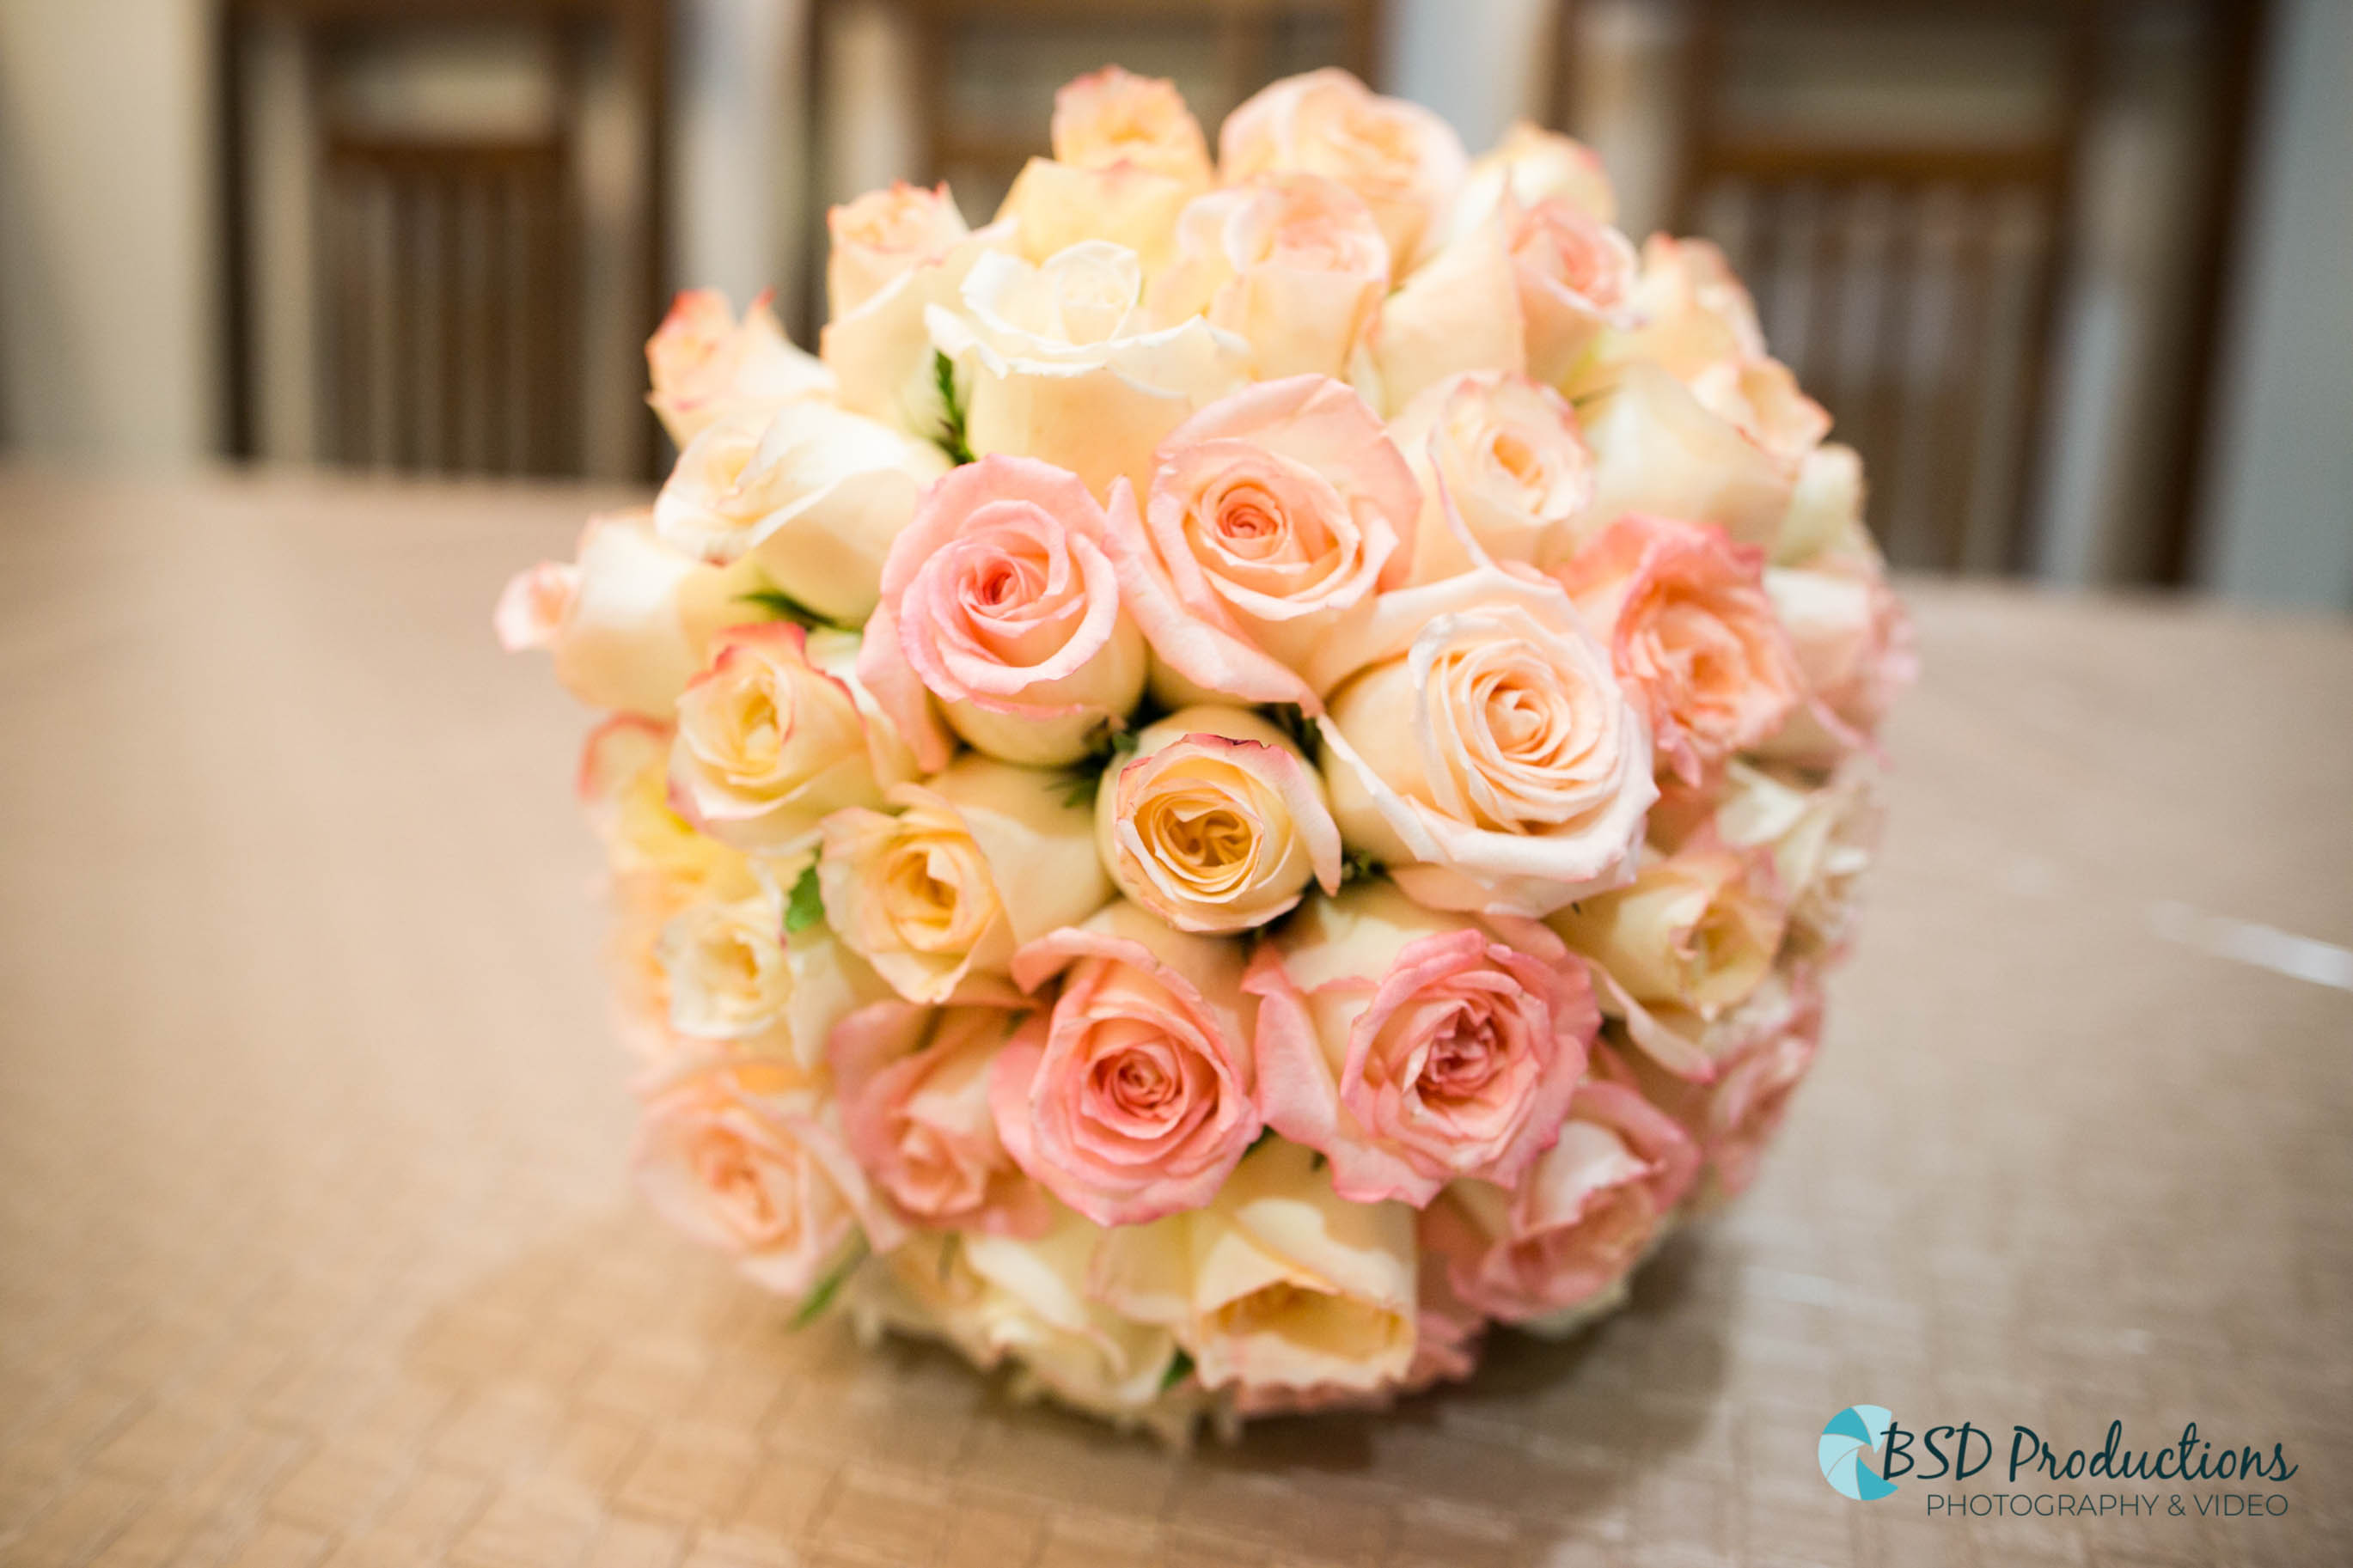 UH5A9968 Wedding – BSD Productions Photography